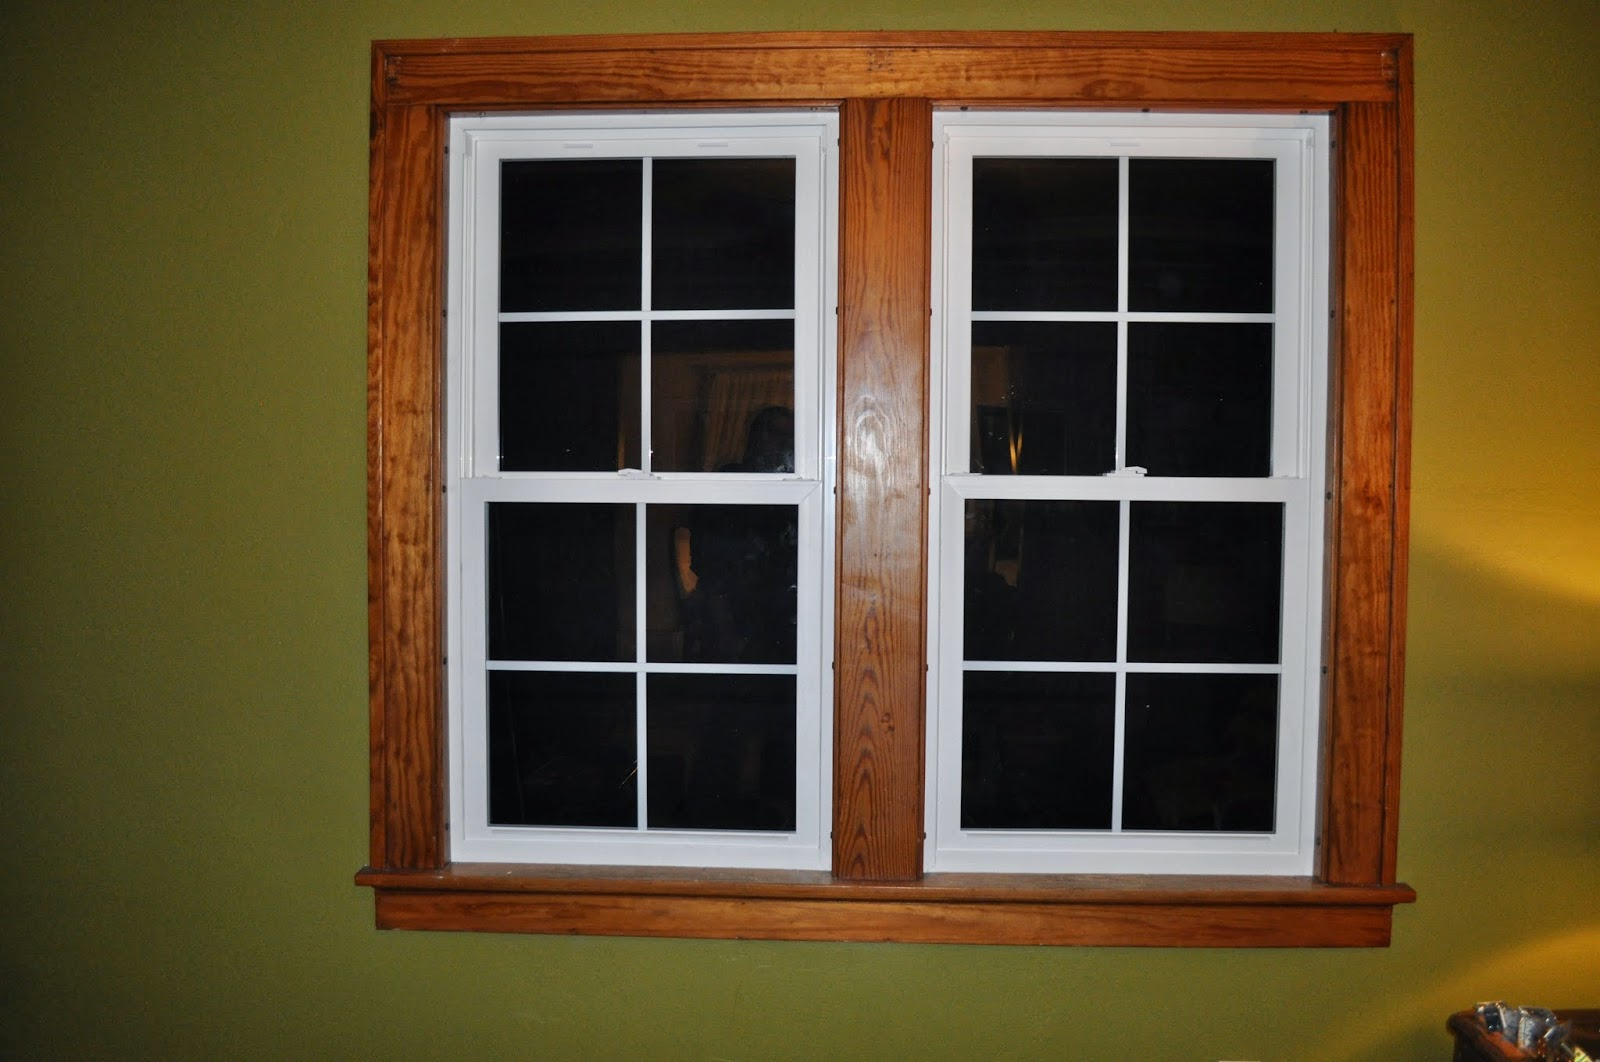 new windows, jeld wen windows, diy, reno, bedroom redo, vinyl windows, window install